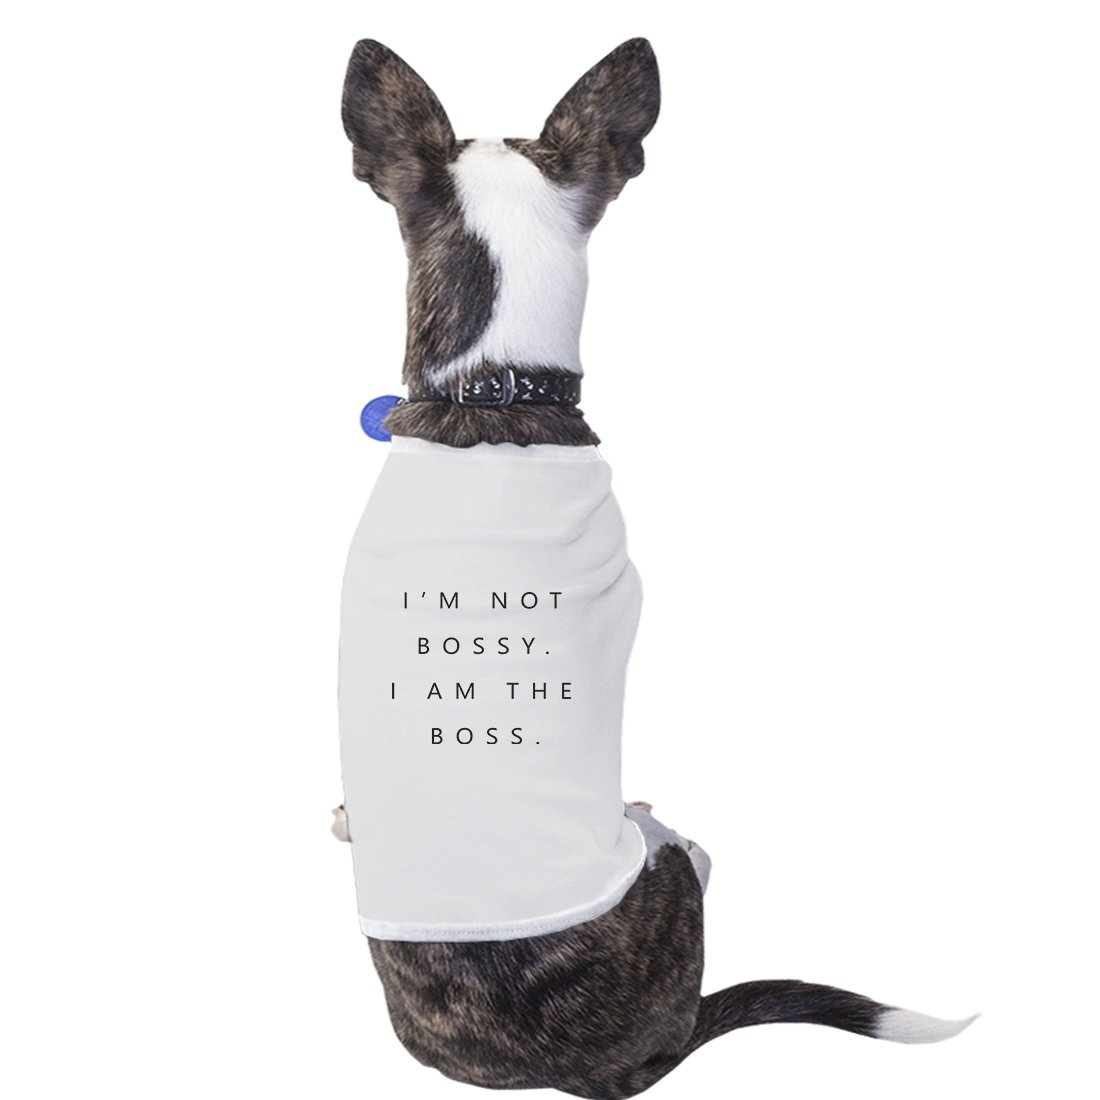 Details about  /I/'m the Boss Pet Shirt for Small Dogs